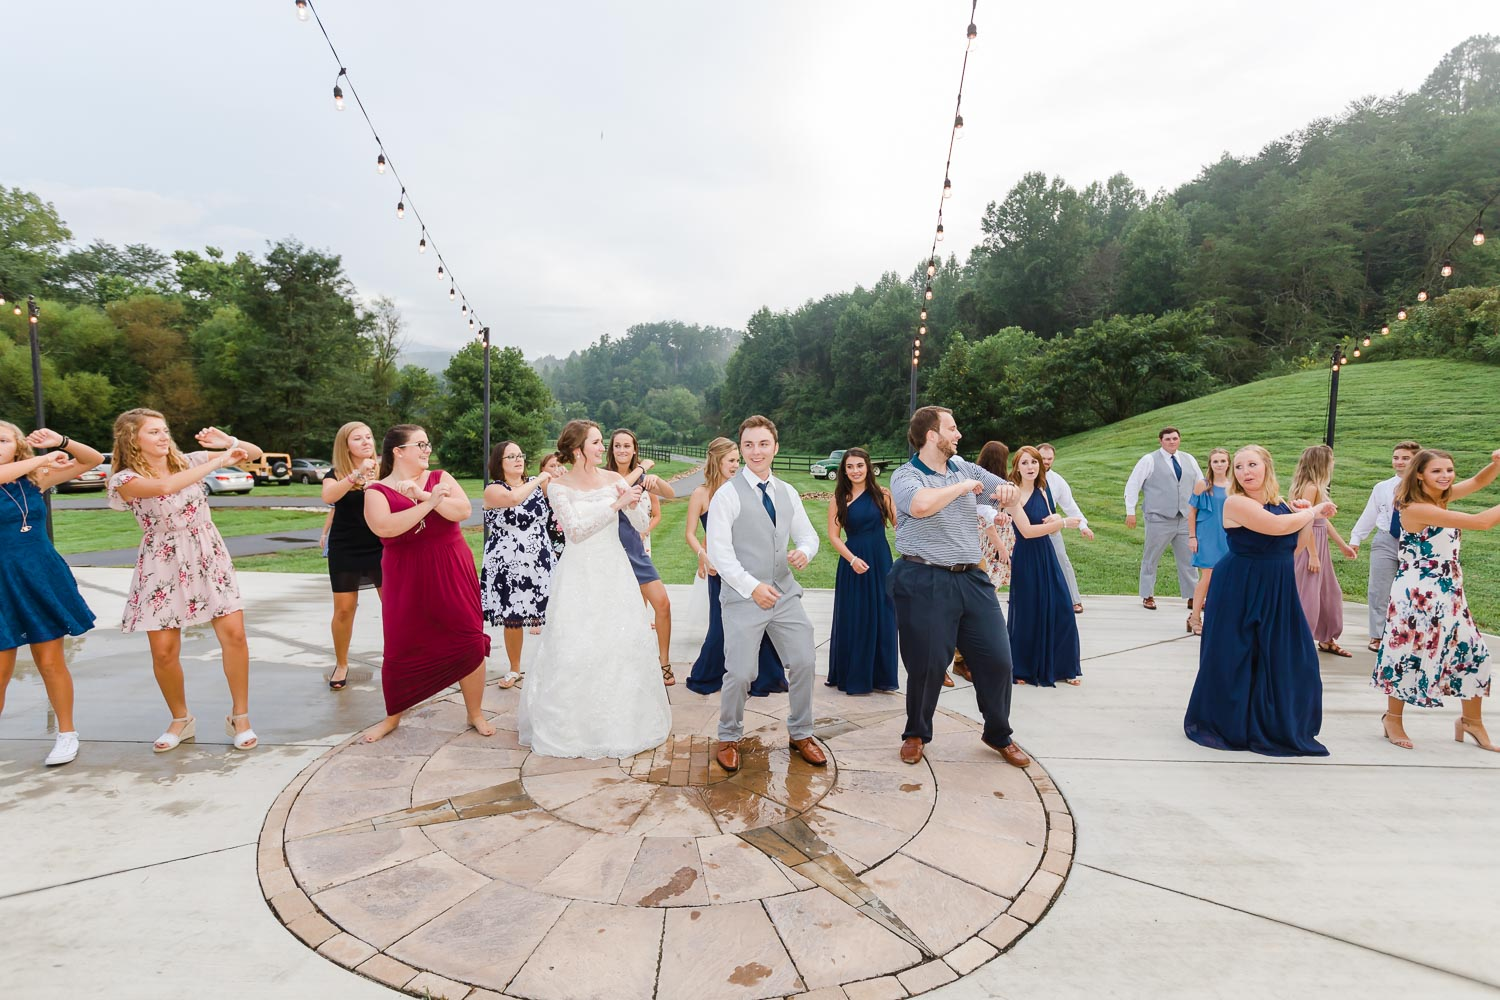 wedding reception dances with guests outdoors under twinkly lights on the patio in front of the Venue at 4 Points Farm in TN